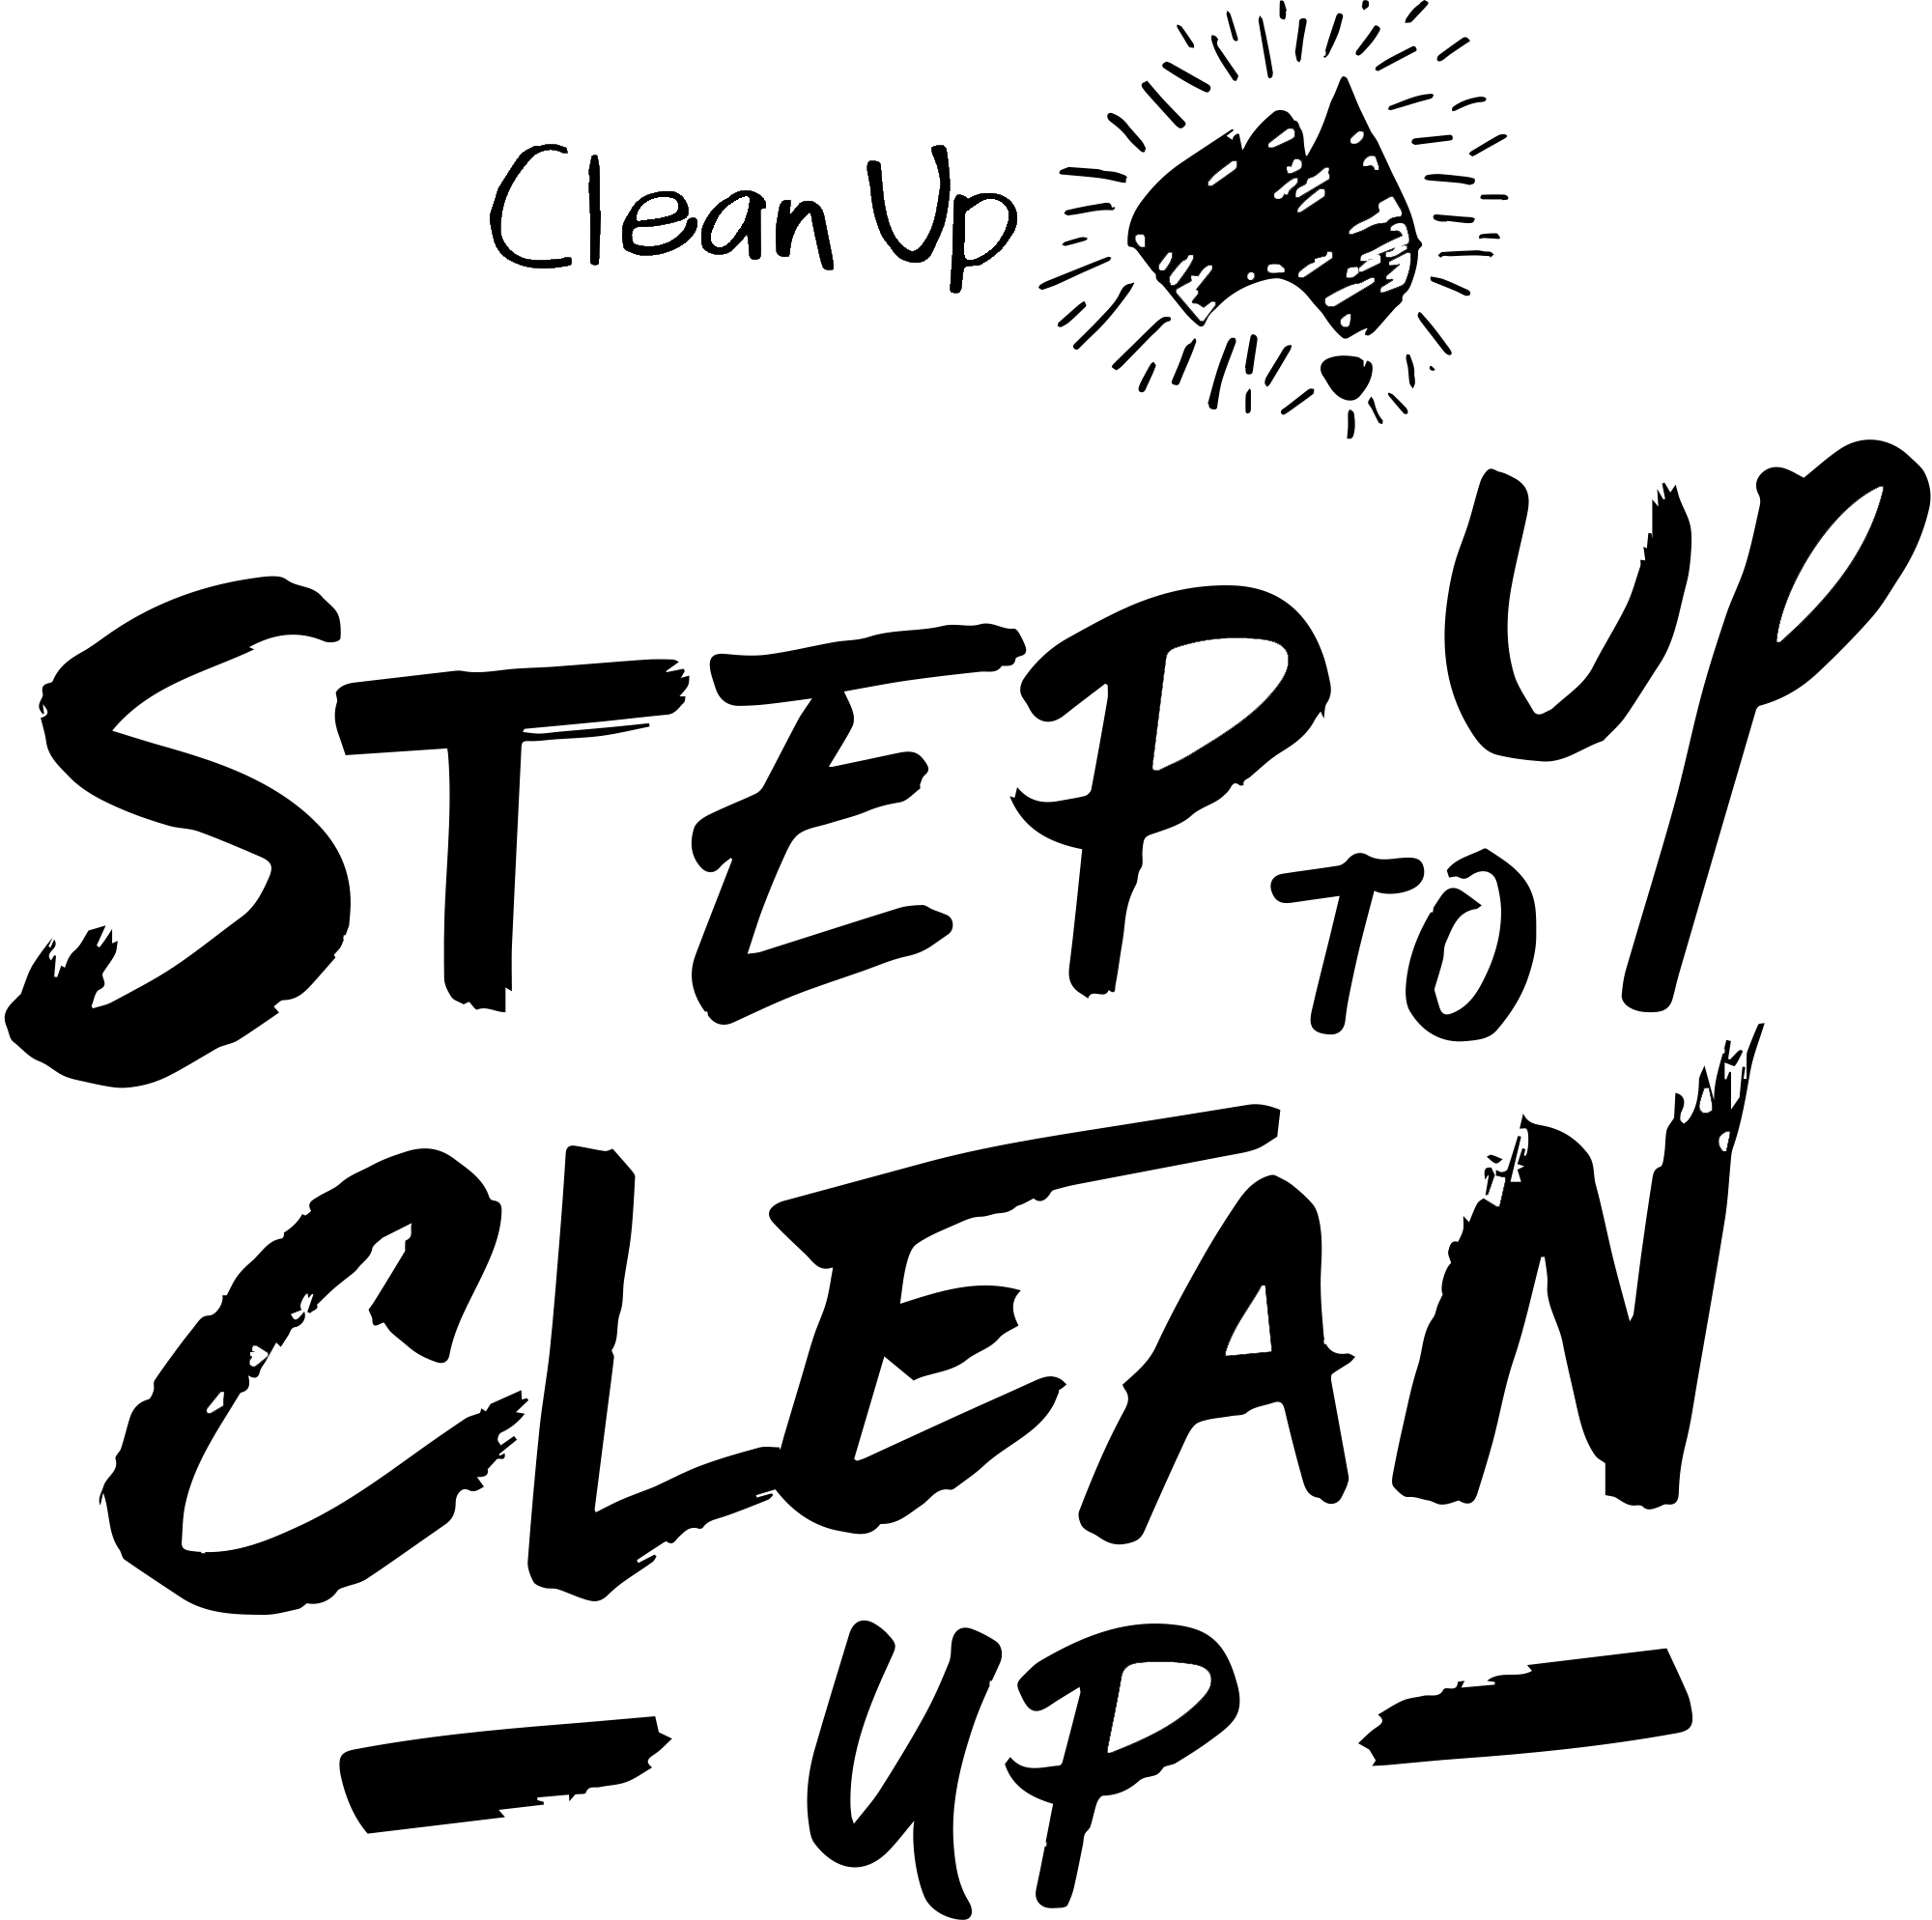 Step up to Clean Up 2020